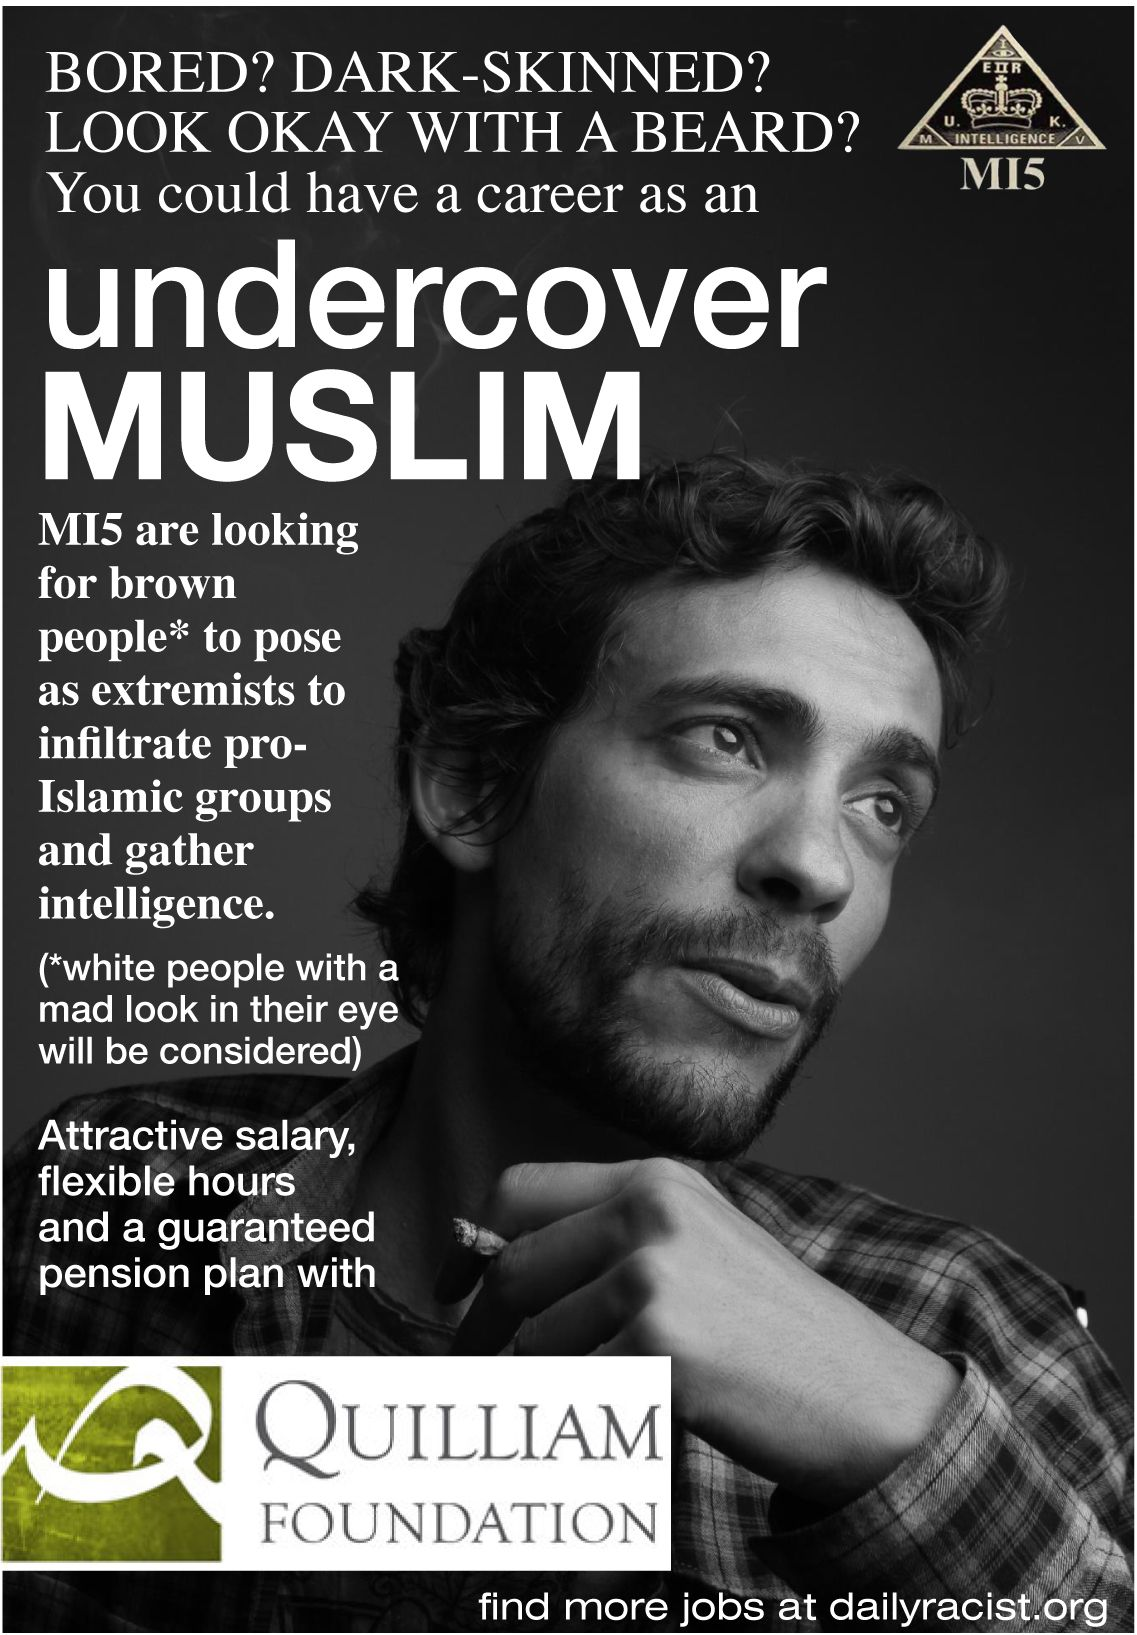 Become an Undercover Muslim More jobs at www.dailyracist.org